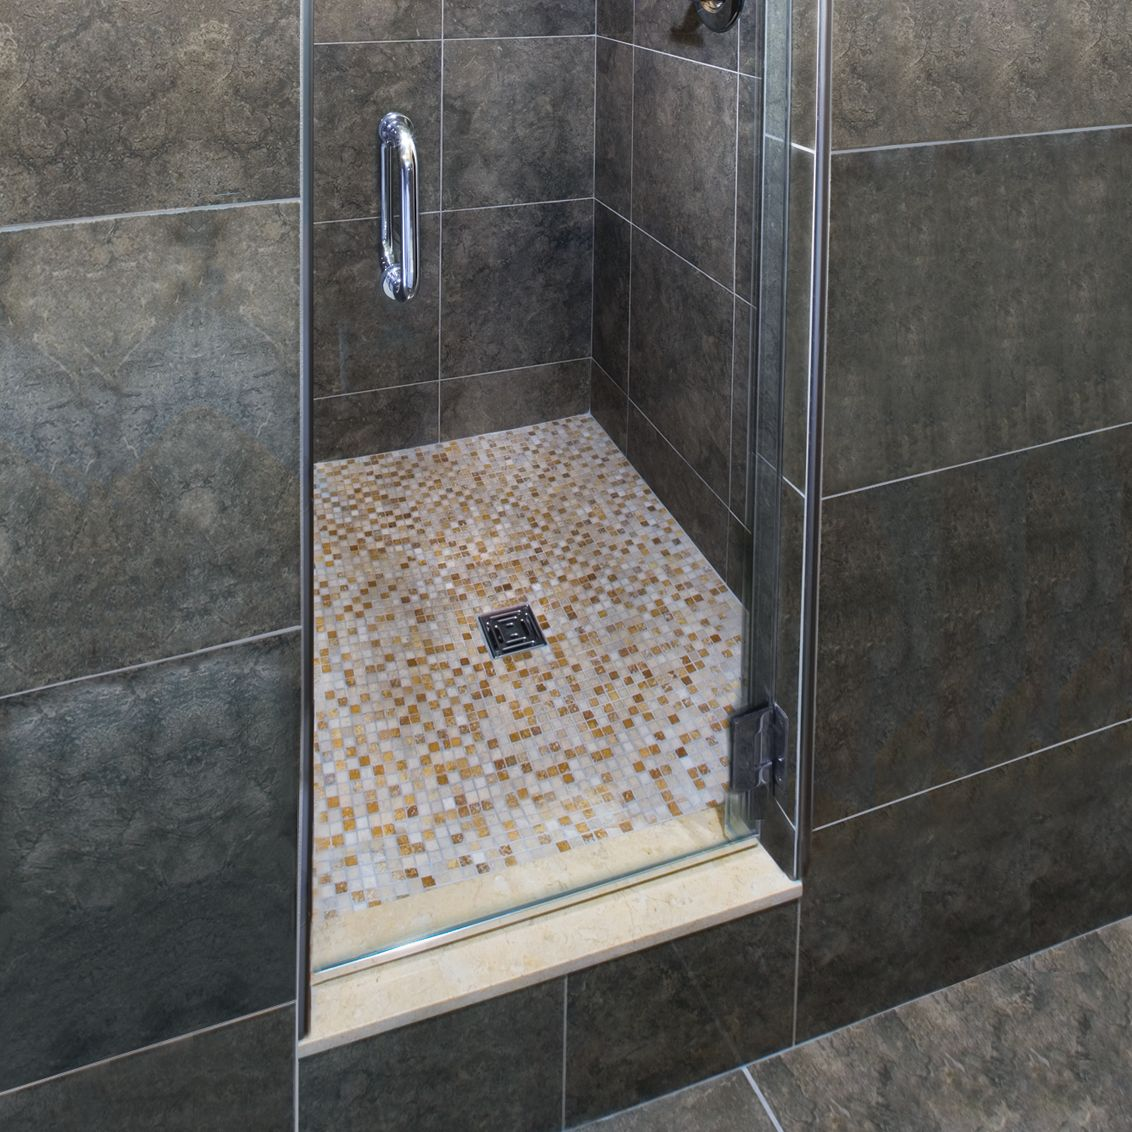 Waterproofing bathroom tile - Traditional Tiled Shower Assemblies Water In Water Out Systems